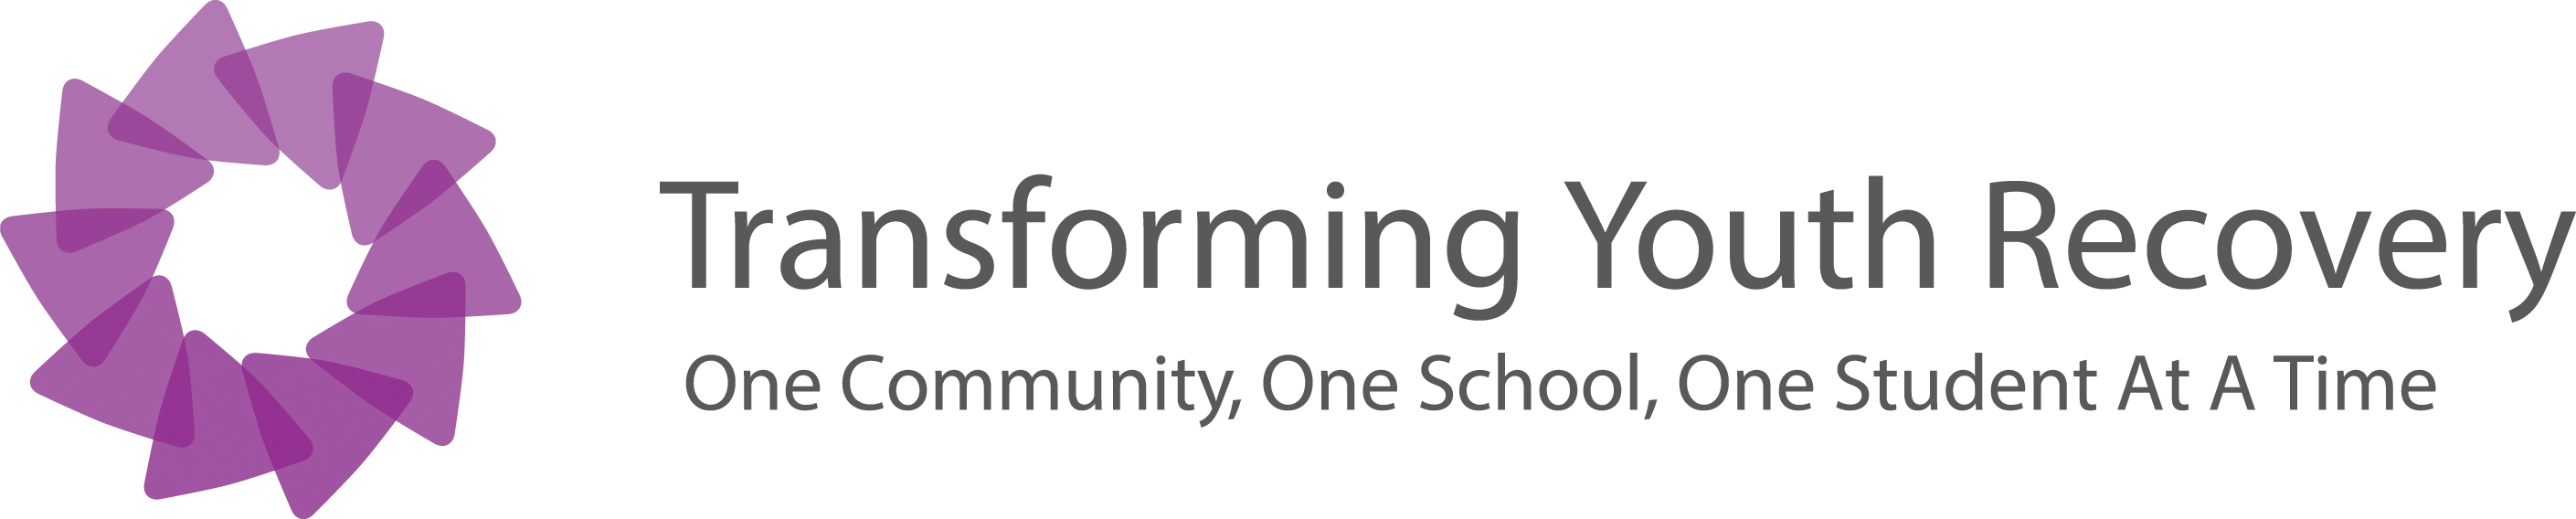 Transforming Youth Recovery